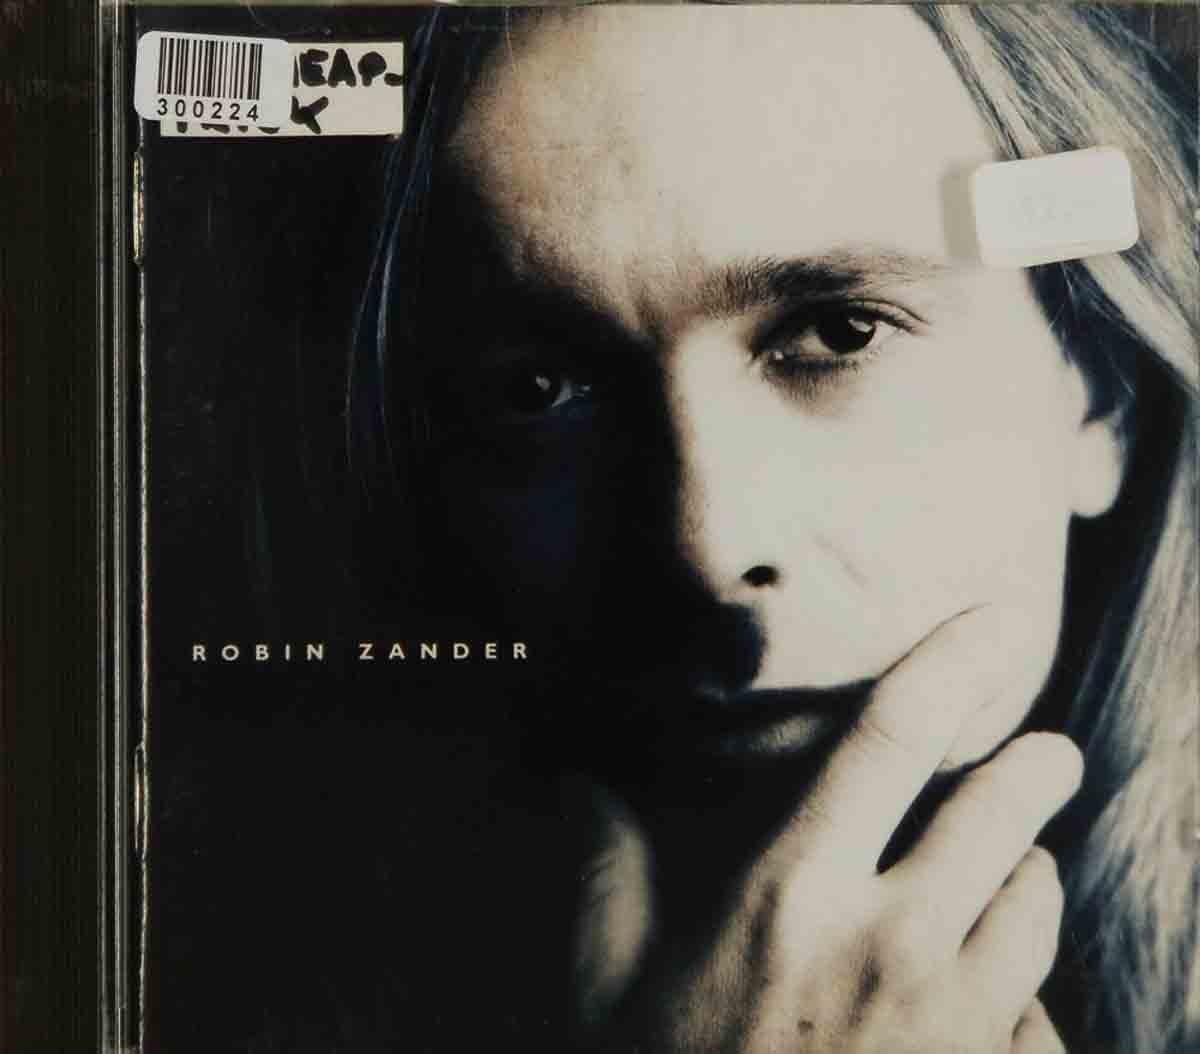 Robin Zander by Atlantic